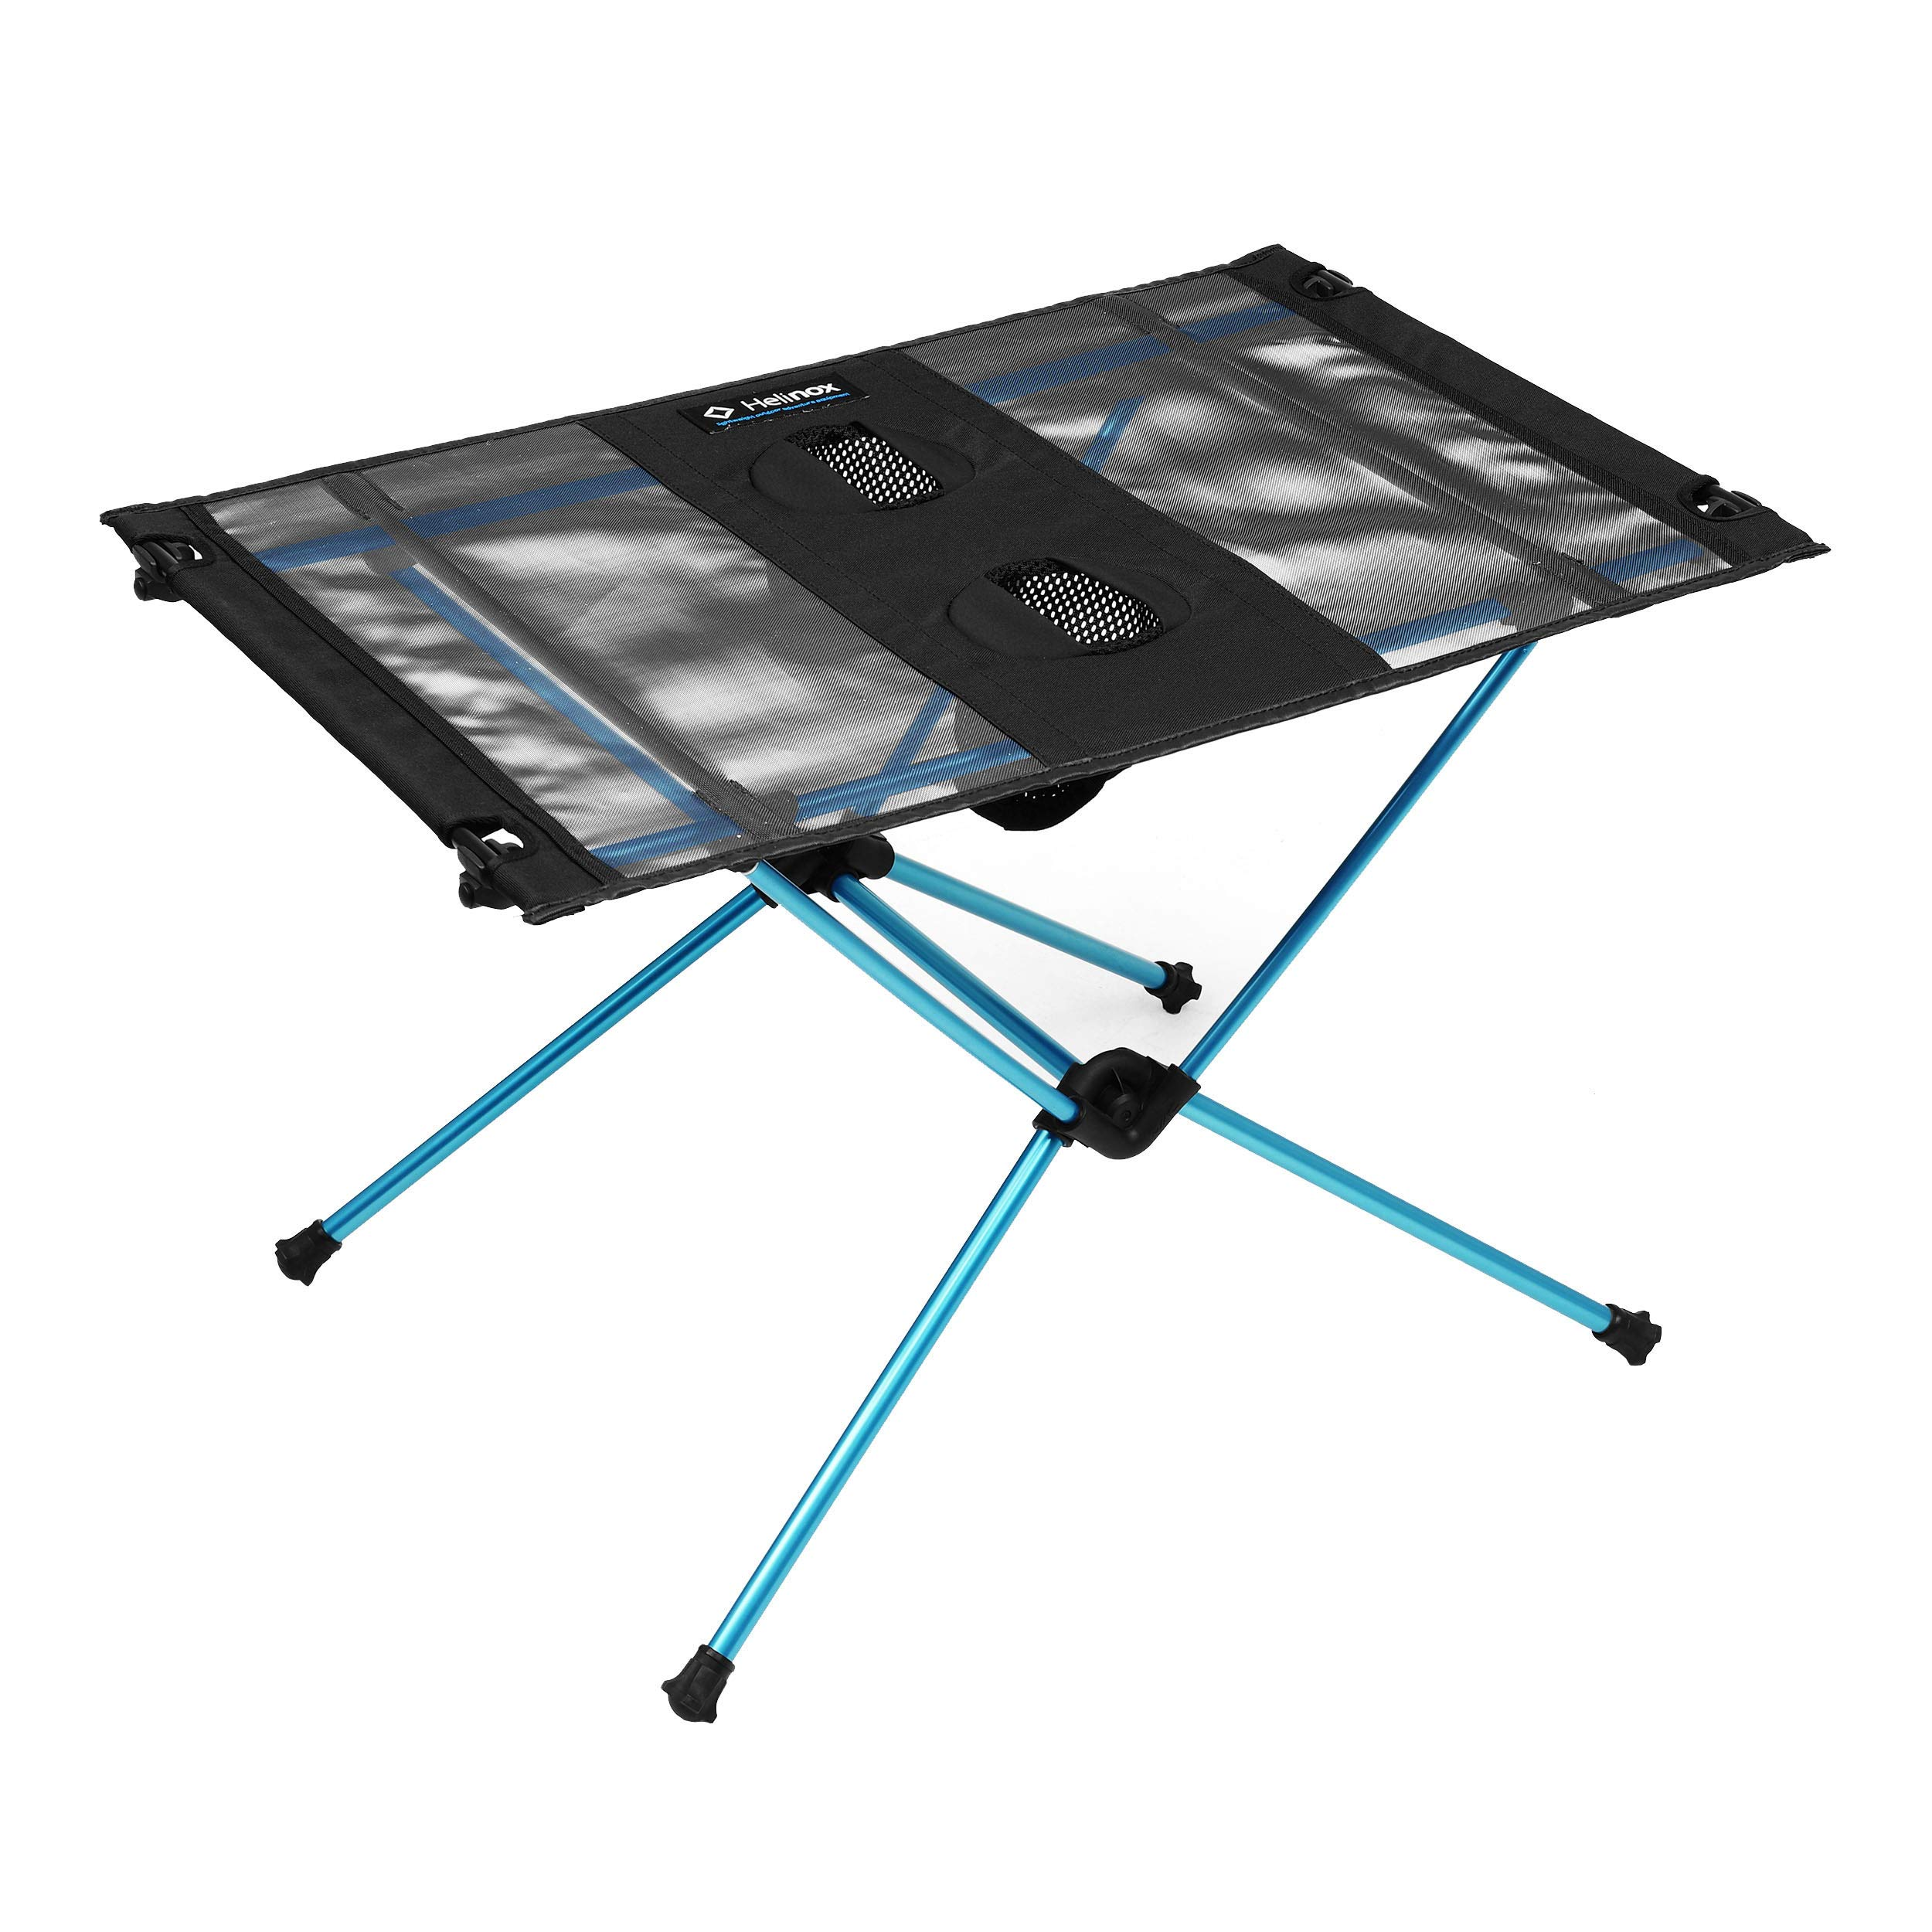 Helinox Table One Lightweight, Collapsible, Portable, Outdoor Camping Table, Black by Helinox